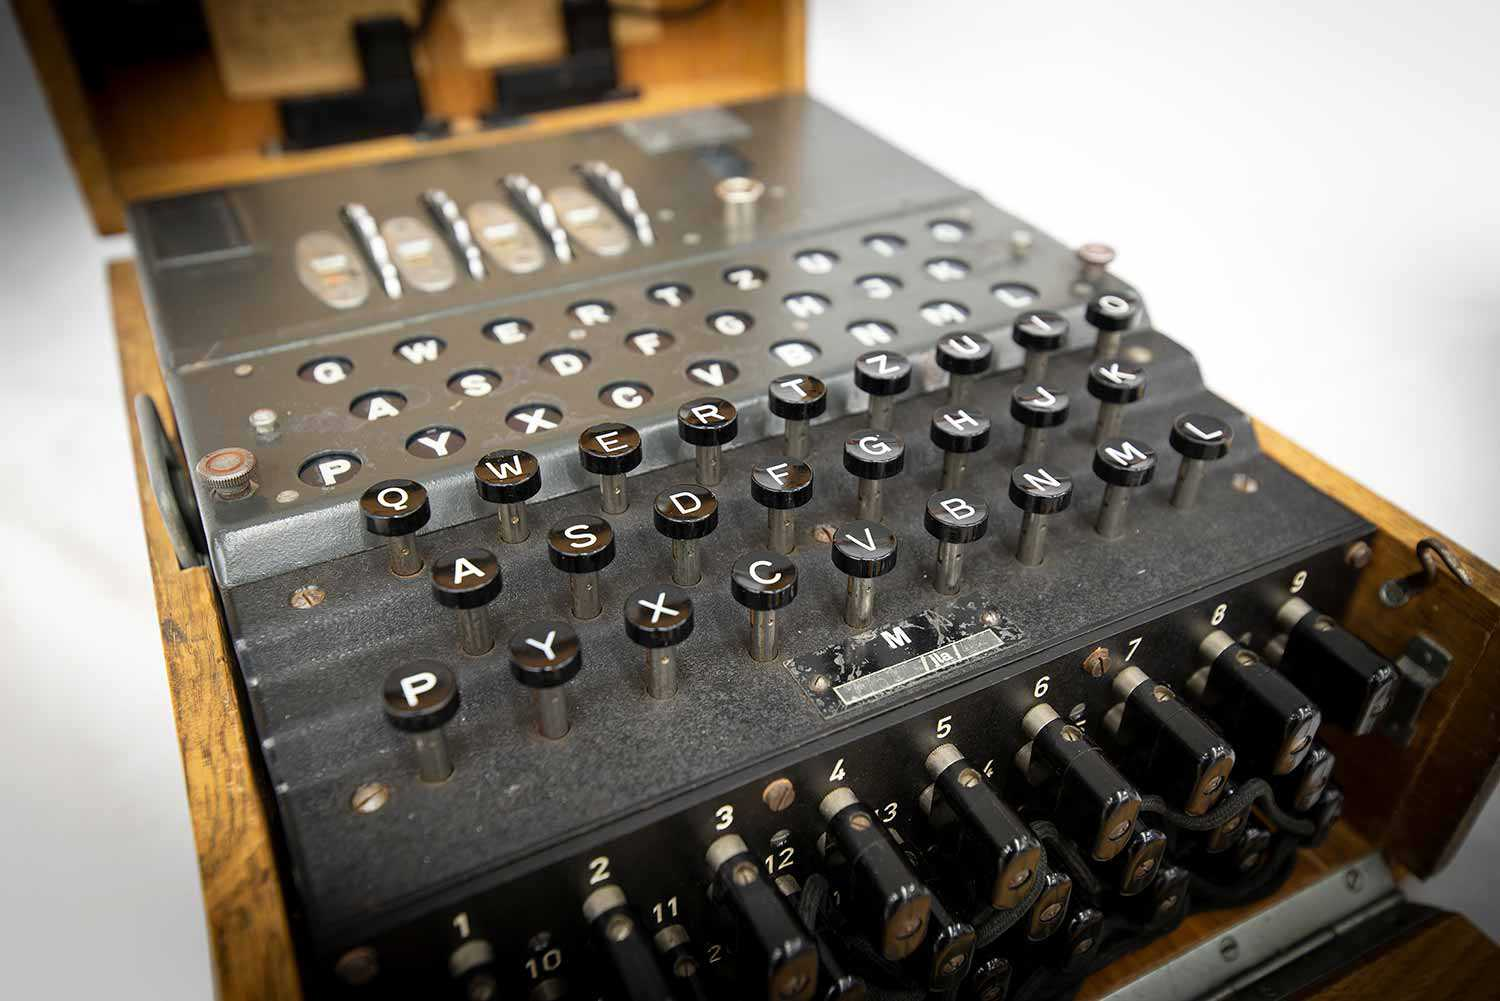 An Enigma machine from a German submarine.